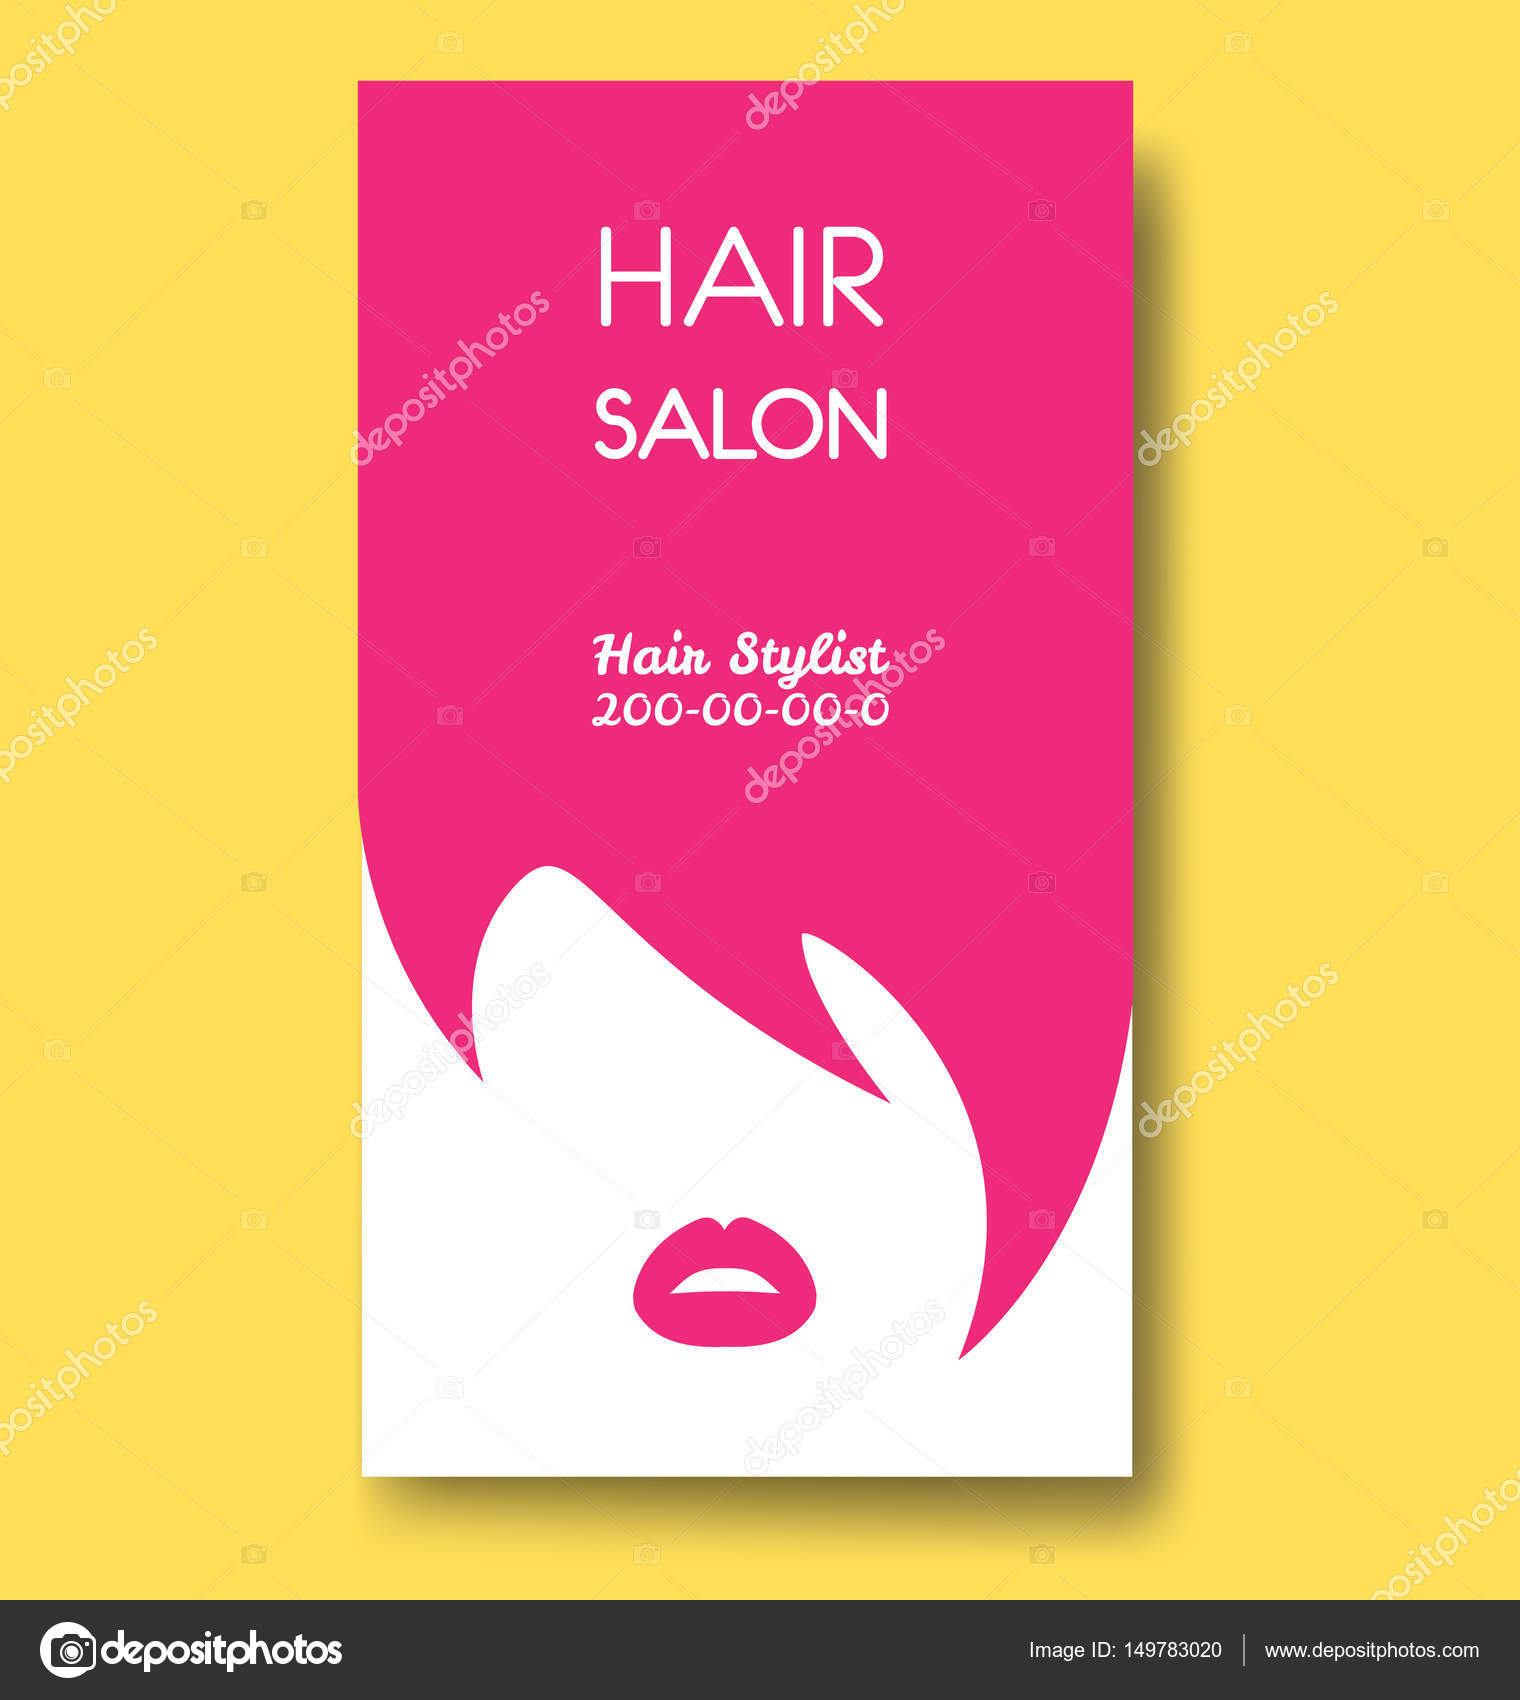 Hair salon business card templates with pink hair and pink lips hair salon business card templates with pink hair and pink lips stock vector fbccfo